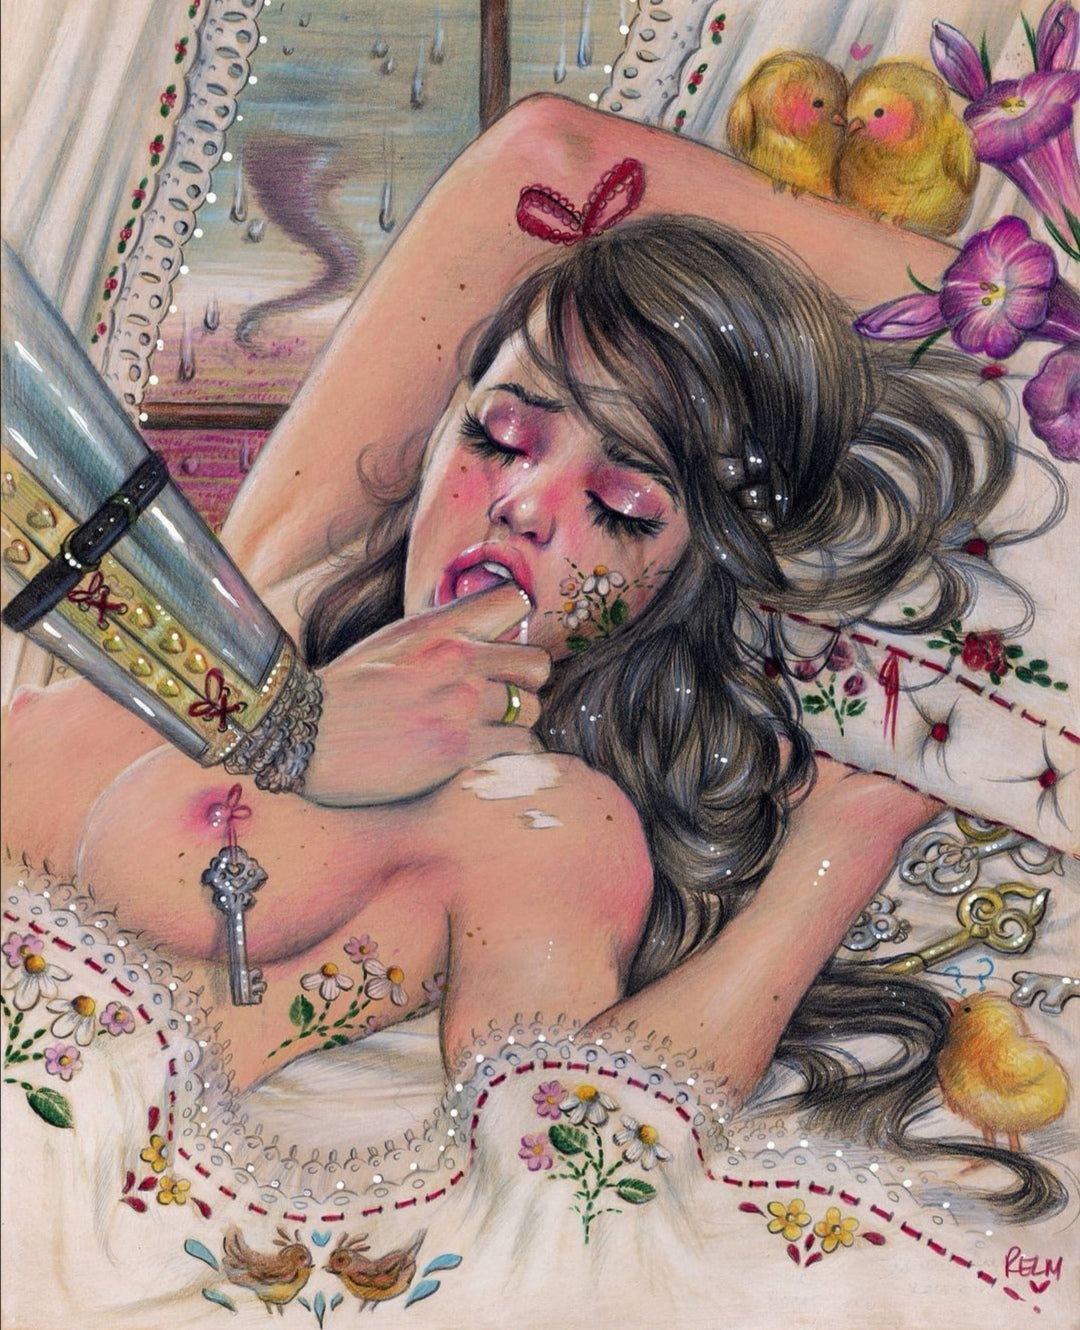 'Honeymoon Sweet' Limited Edition Print